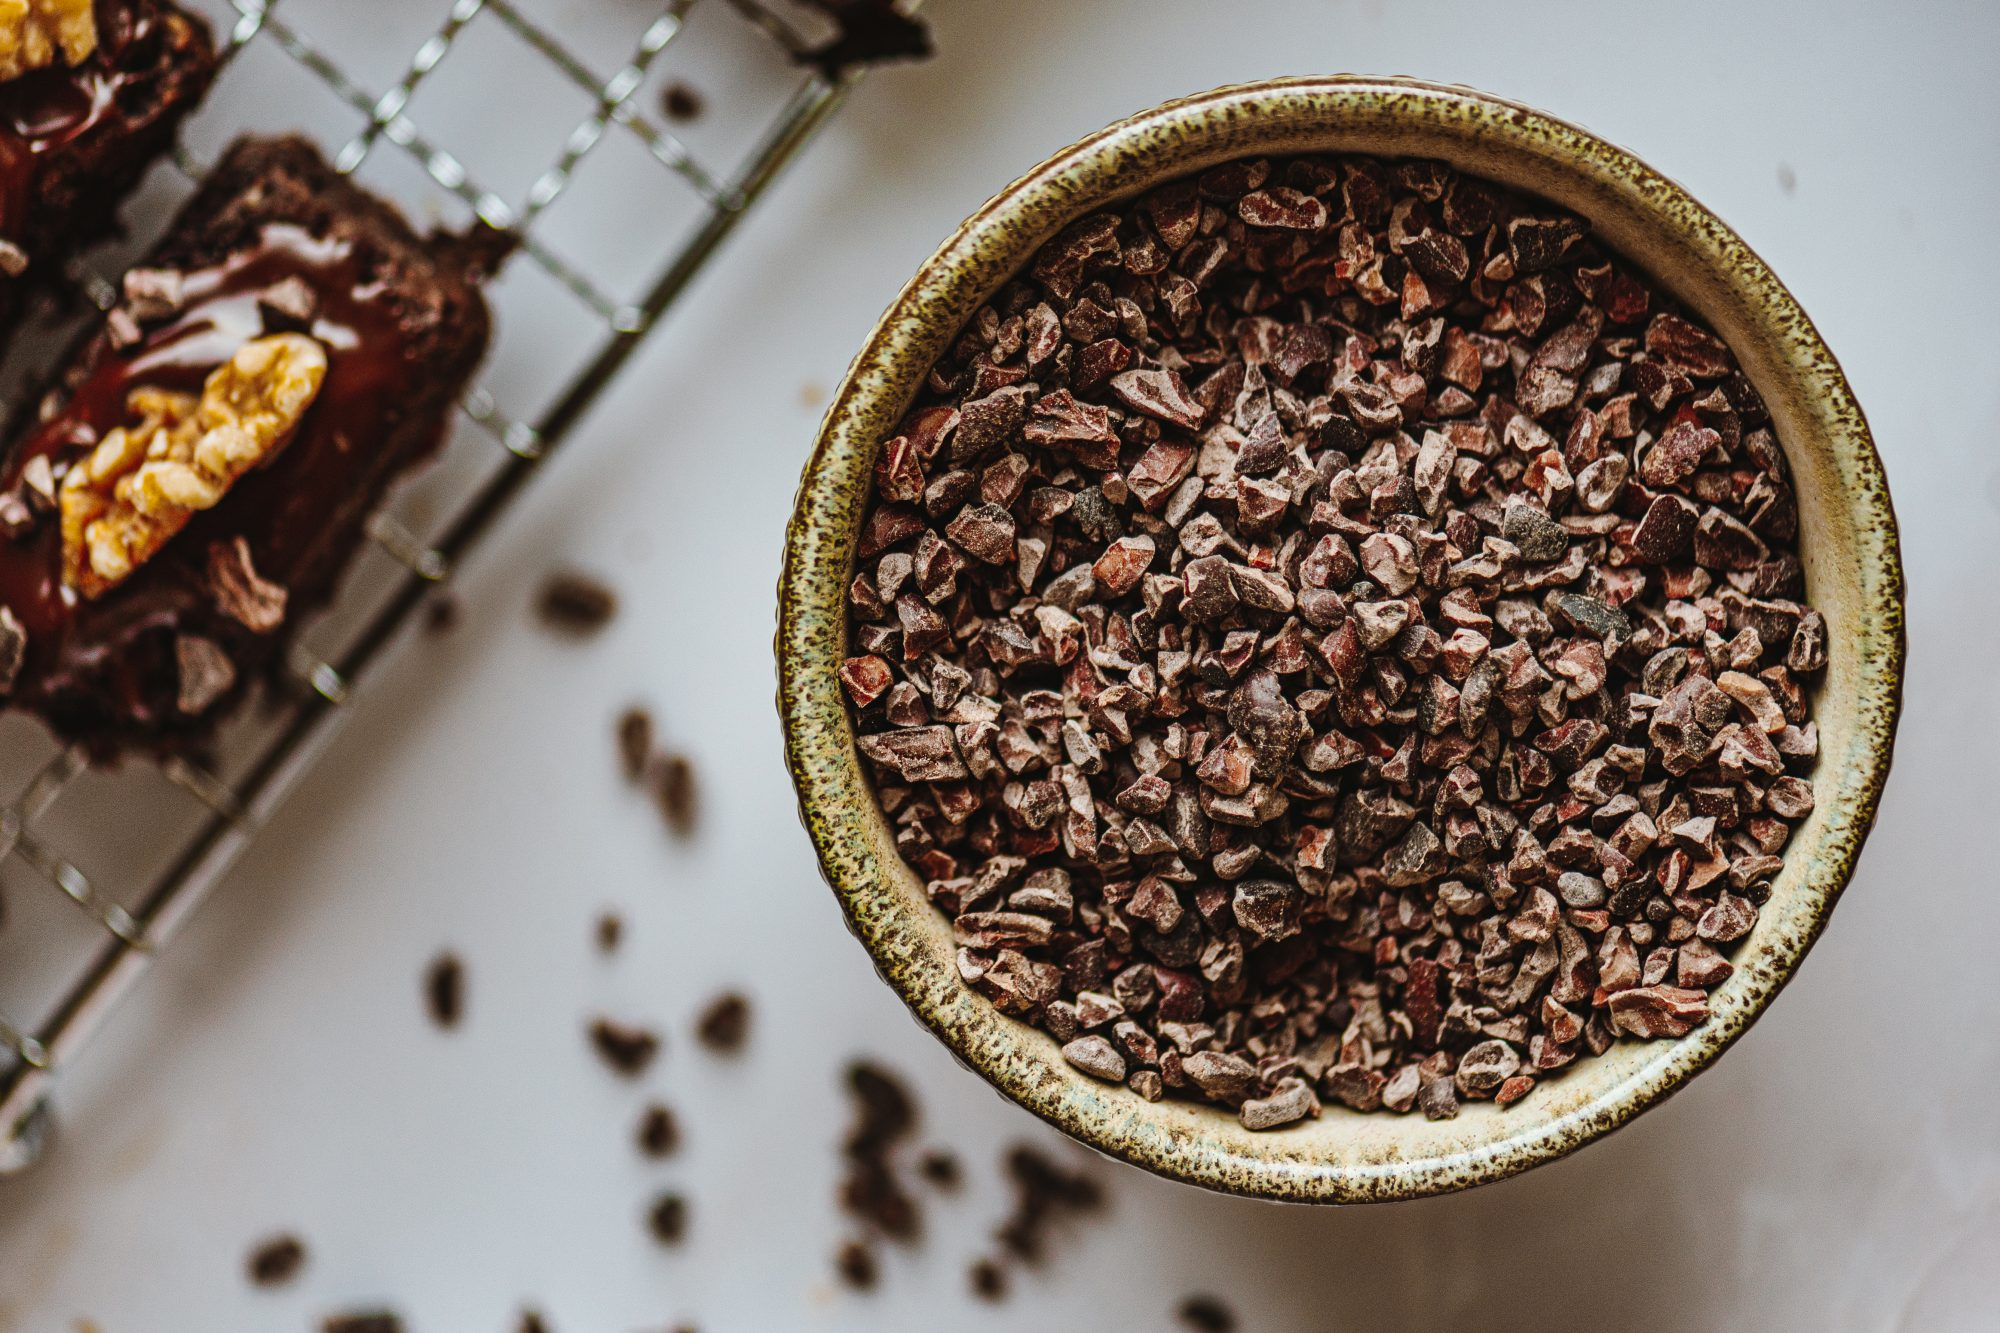 cacao nibs in bowl on counter